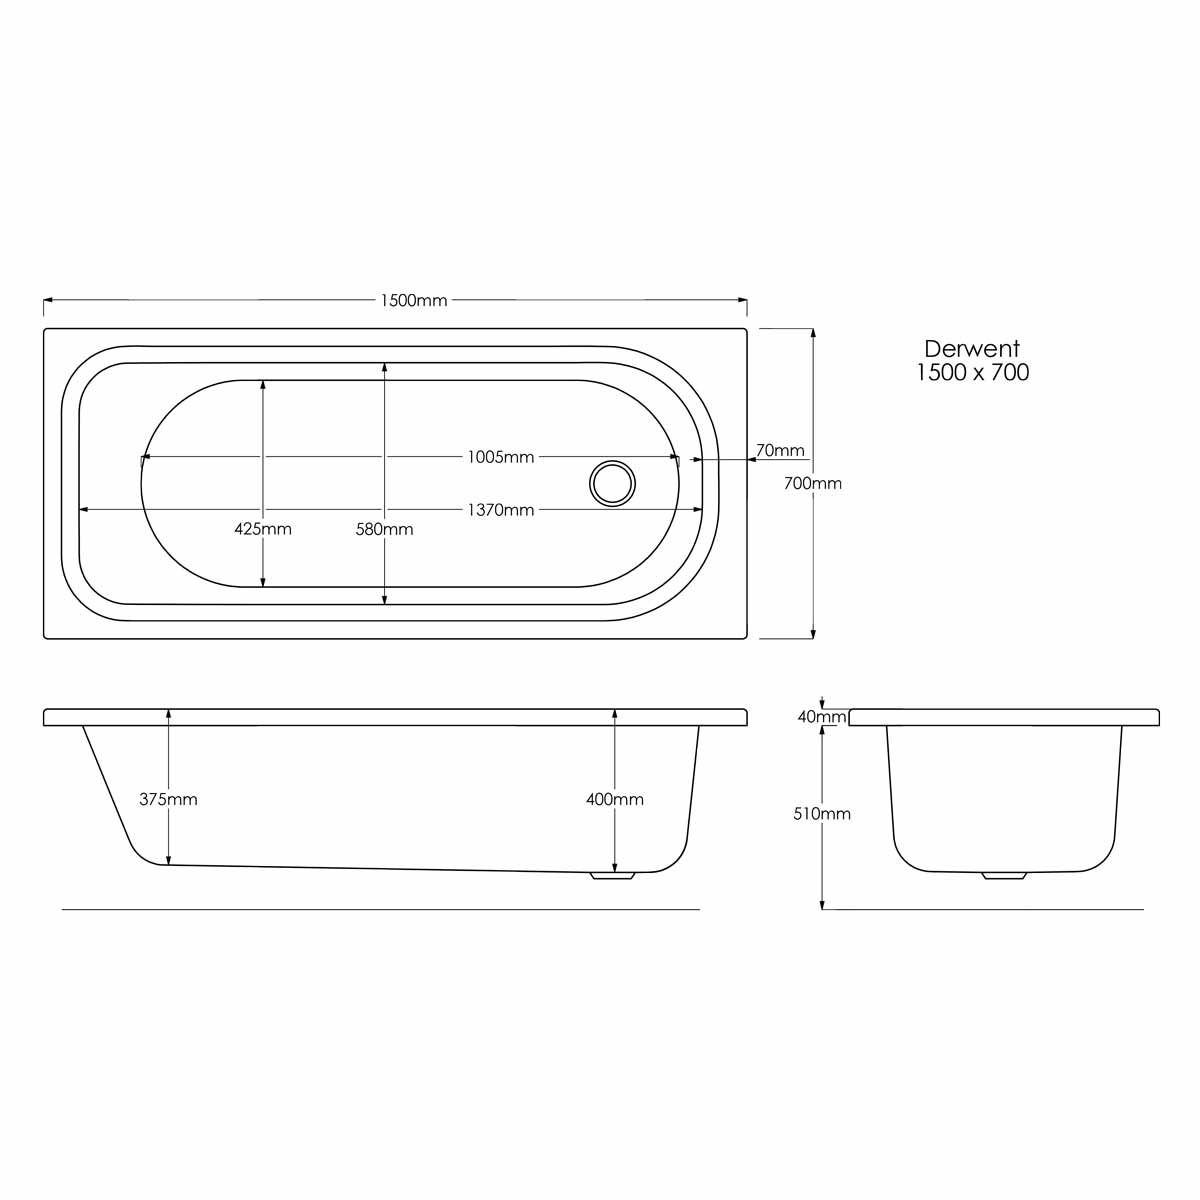 Trojan Derwent Reinforced Single Ended Bath 1500 x 700 with Grips Dimensions